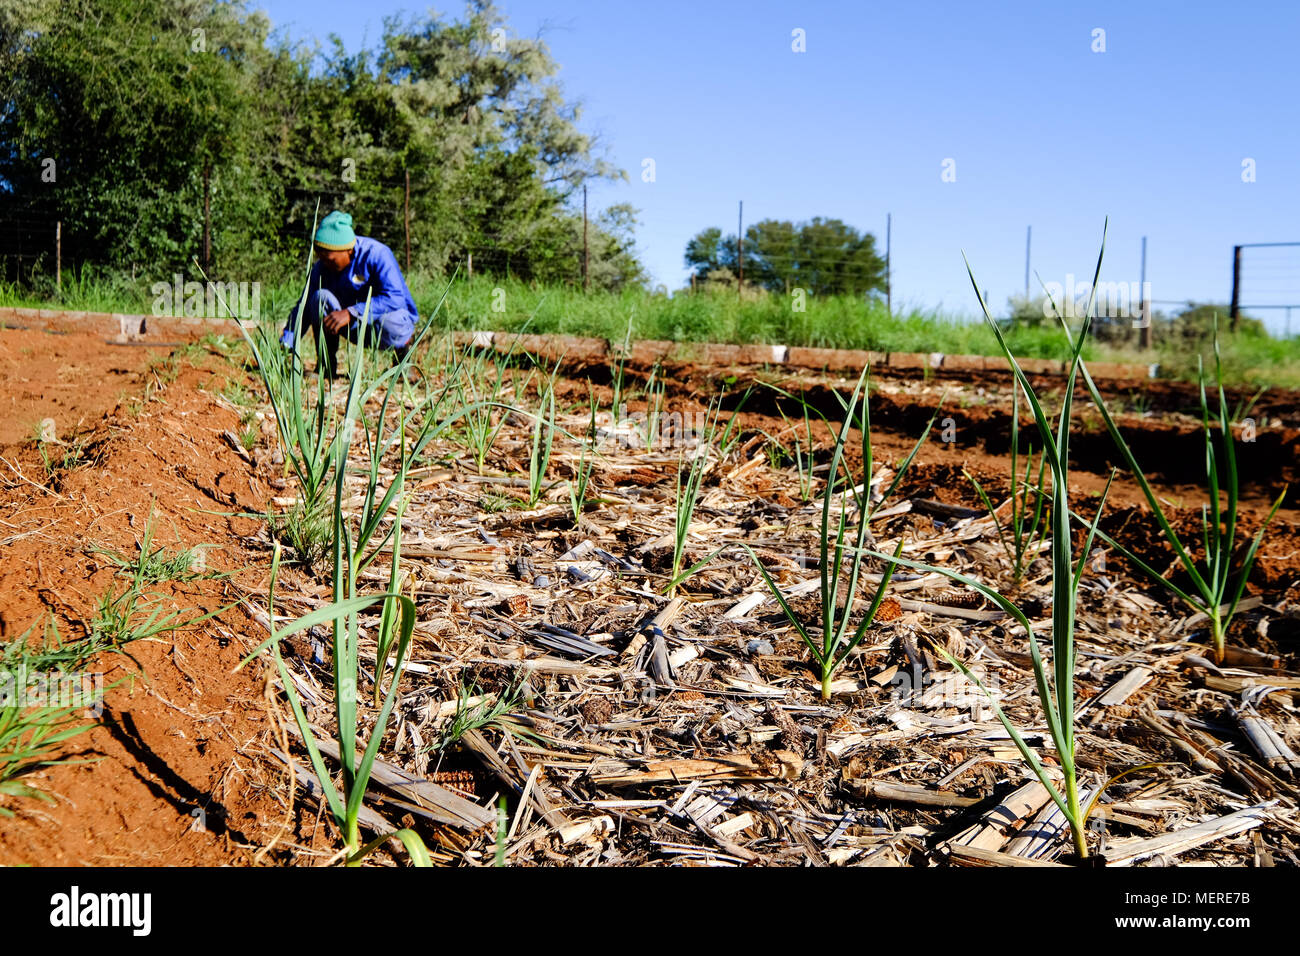 Farm Worker tending to Vegetable Garden Organic Vegetable Garden Small scale vegetable farm Small scale garlic production - Stock Image